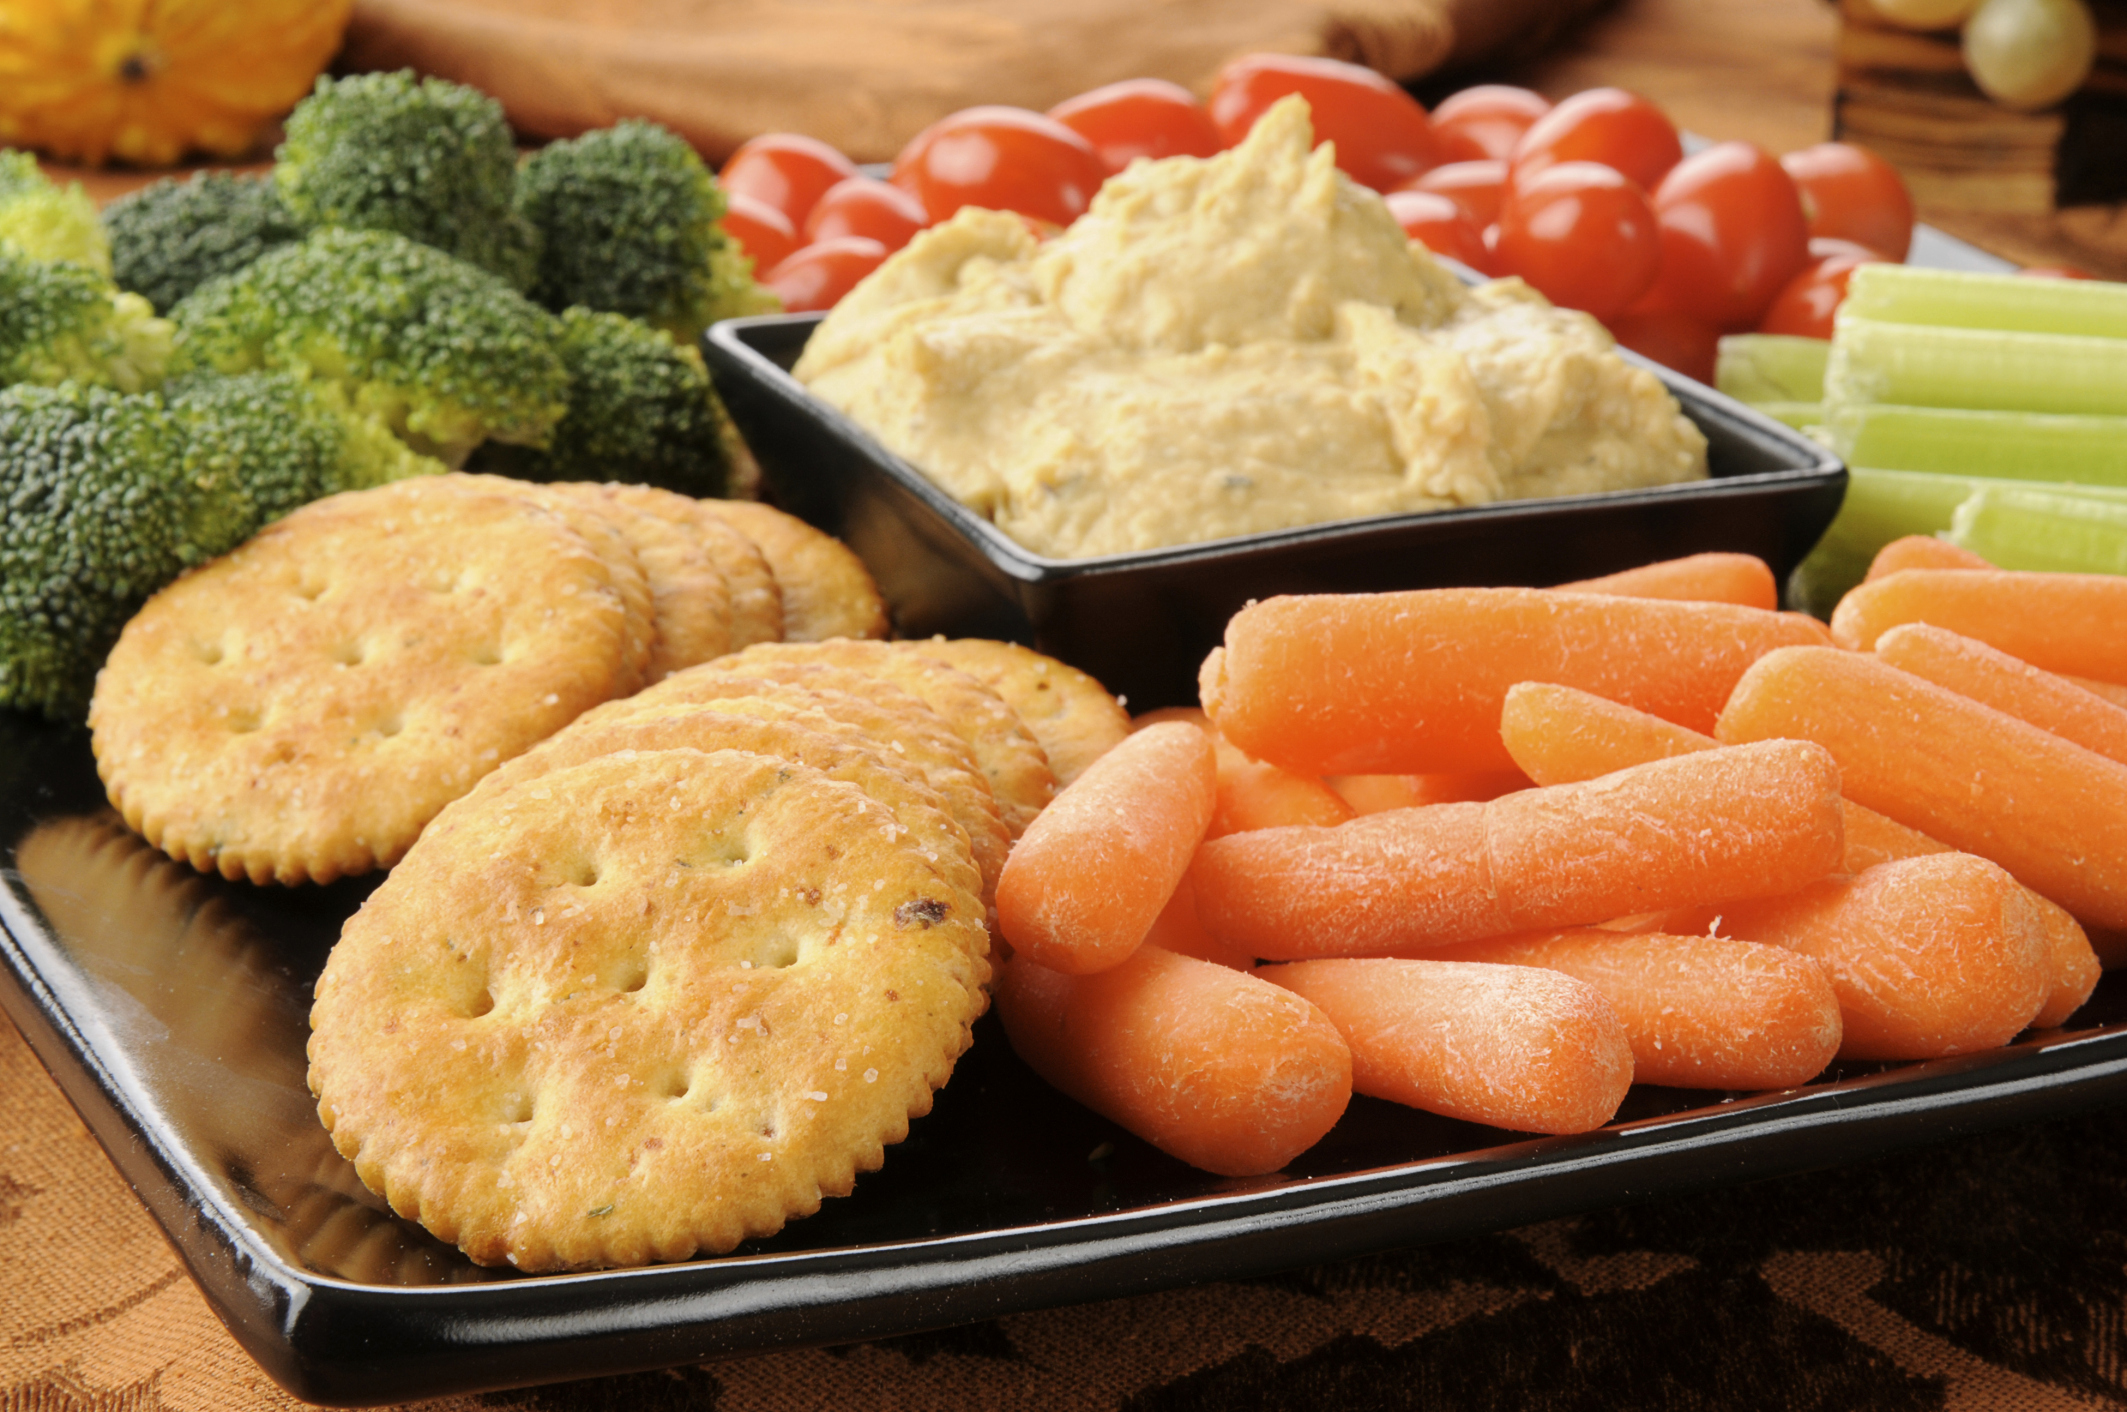 Healthy Snacks for Weight Gain